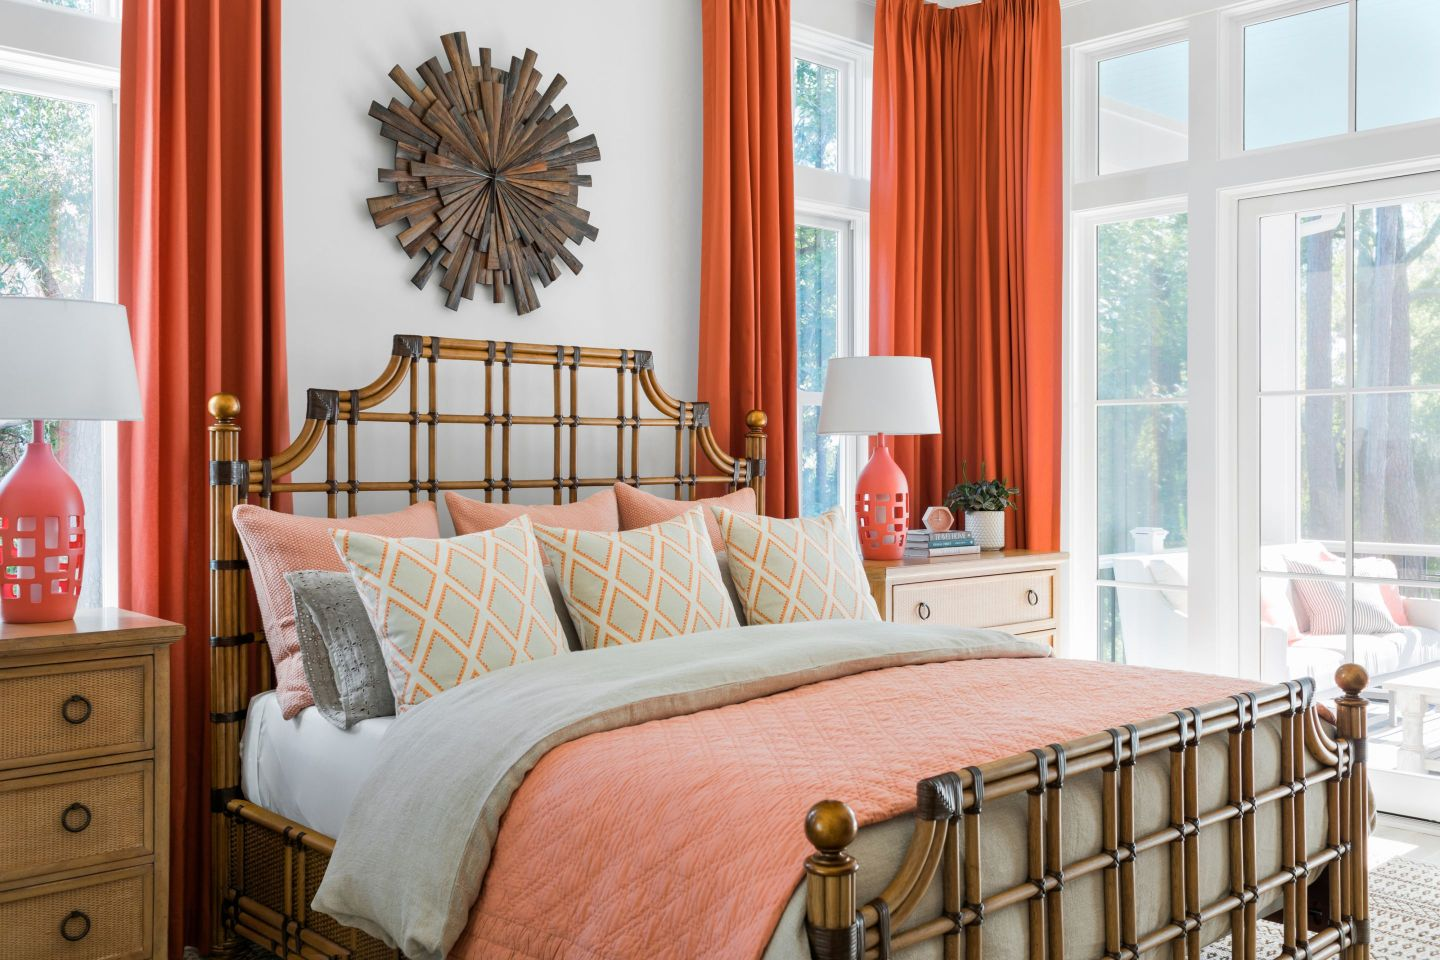 HGTV-Dream-Home-2020-Master-Bedroom-1440x960 Lowcountry Vacation Home Style in Hilton Head with HGTV Dream Home 2020